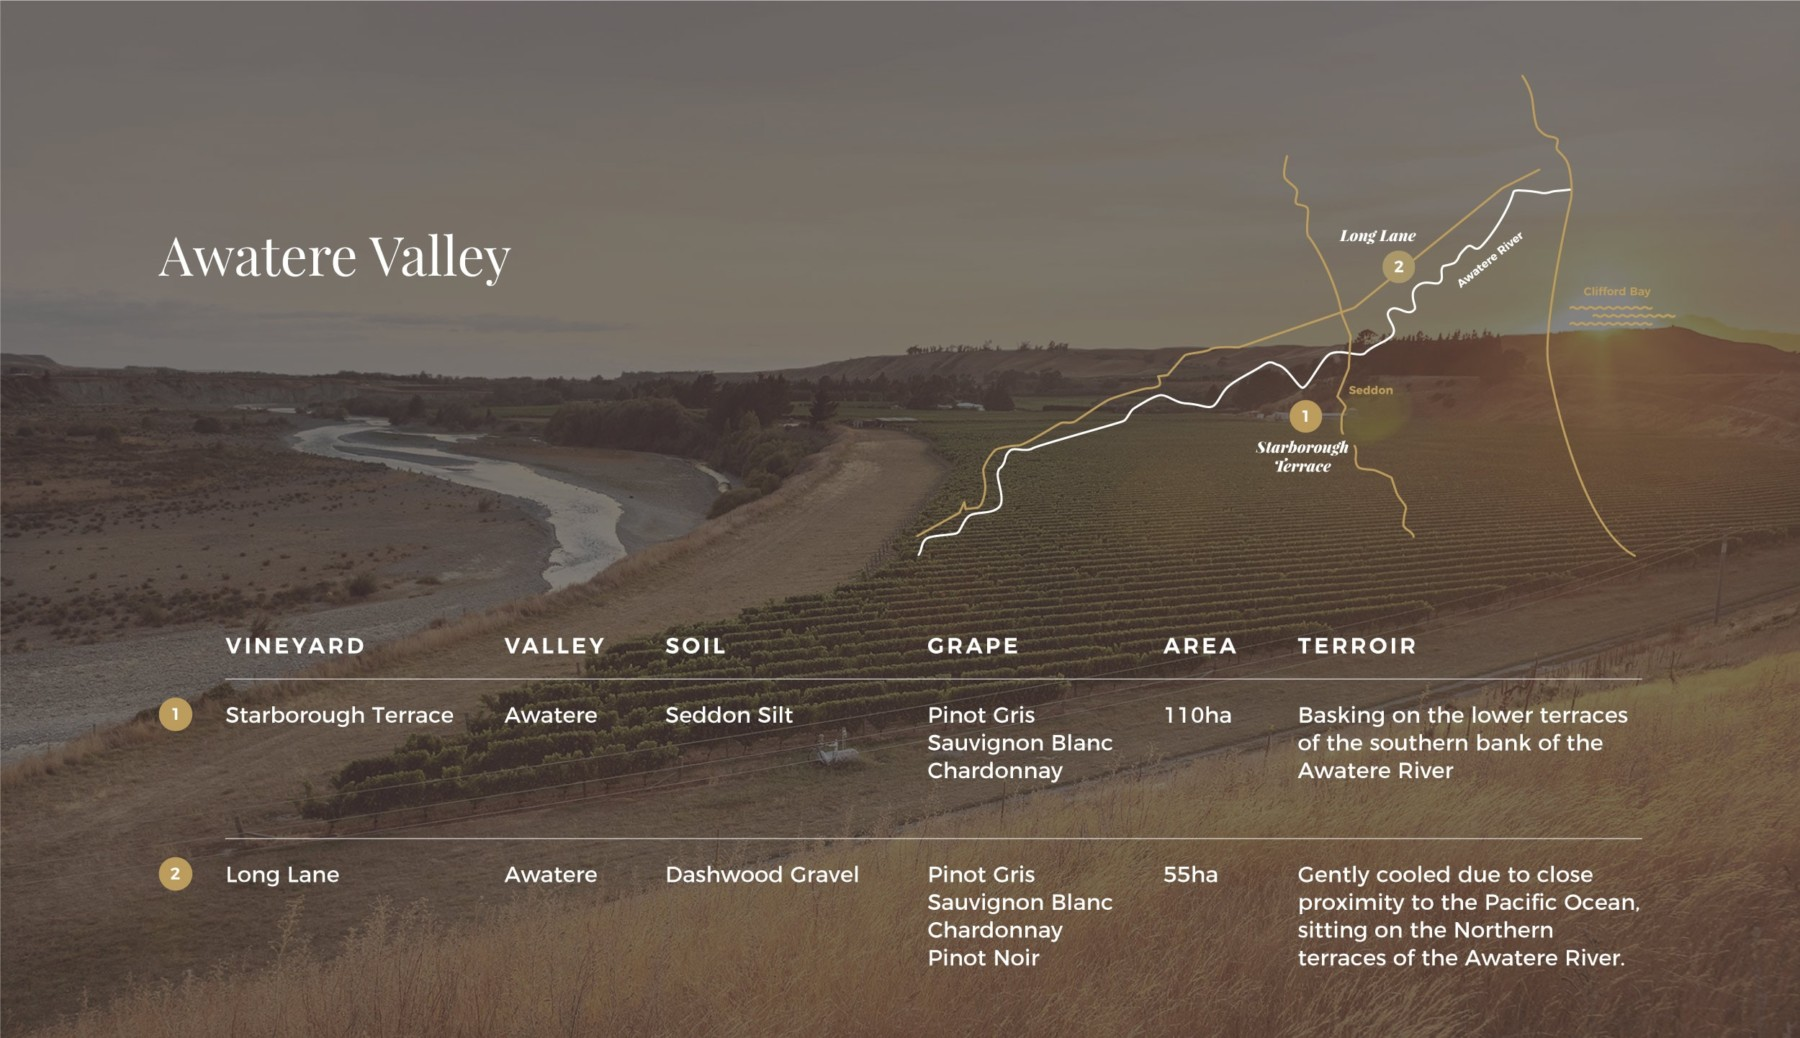 Map of Awatere Valley over laid on image of vines near river